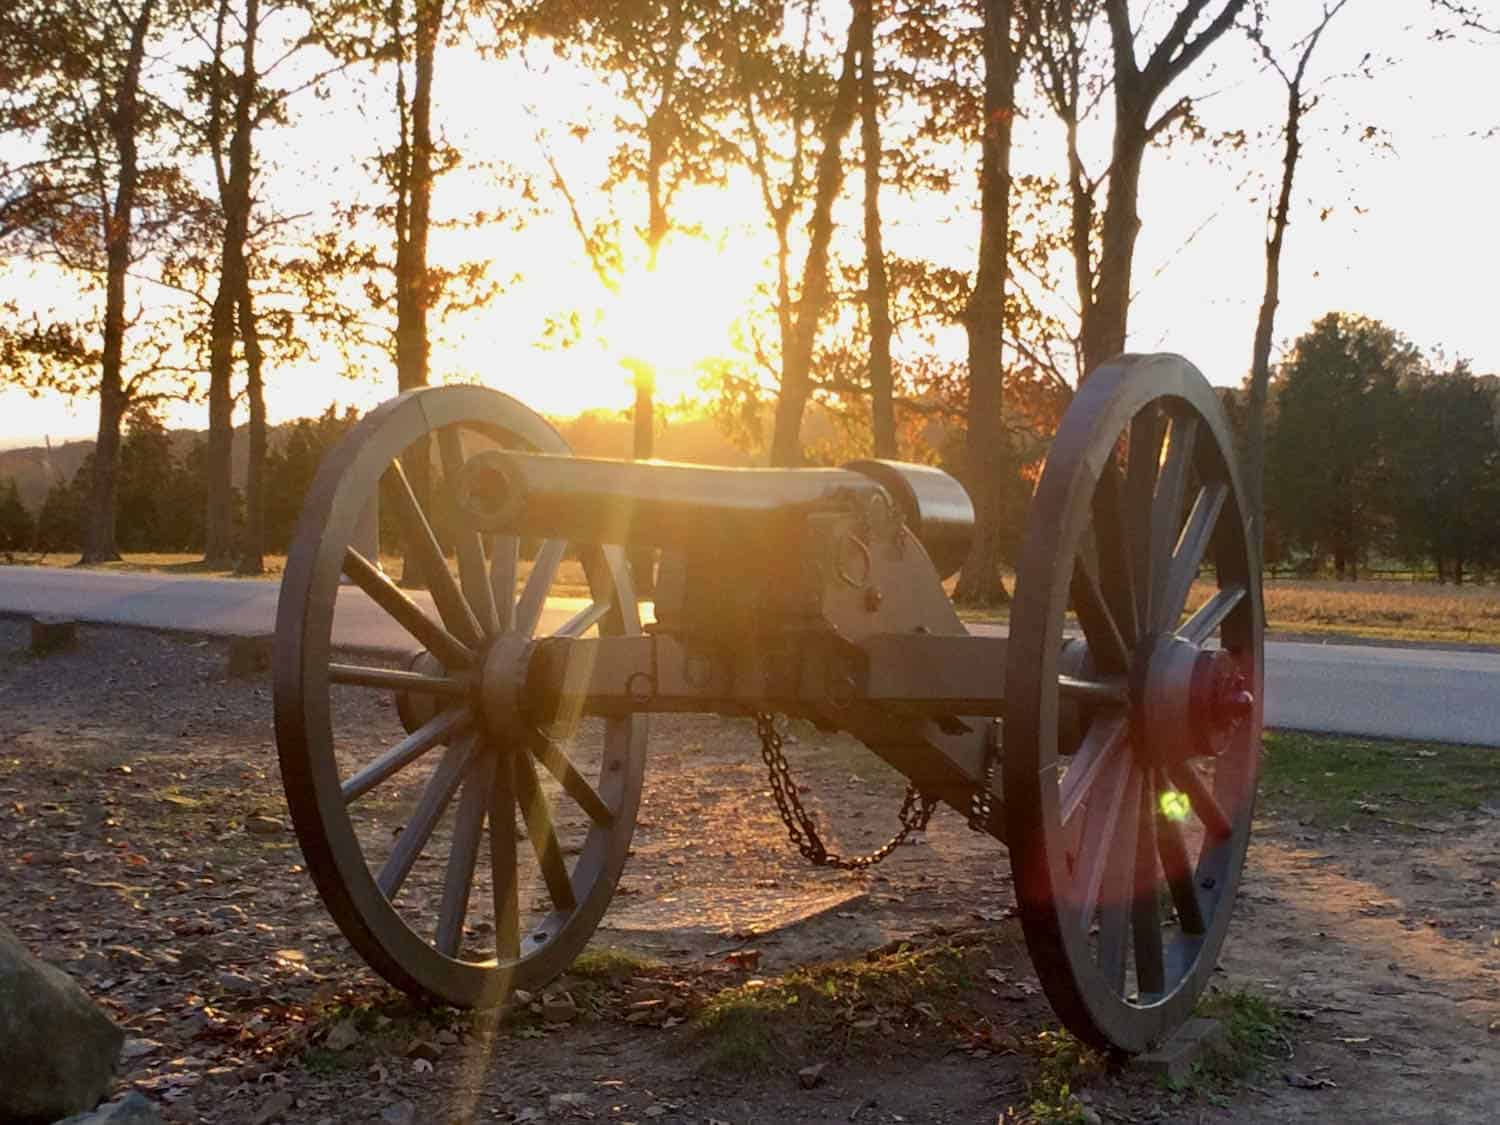 Southern Pennsylvania Road Trip: How to explore Gettysburg and Amish Country